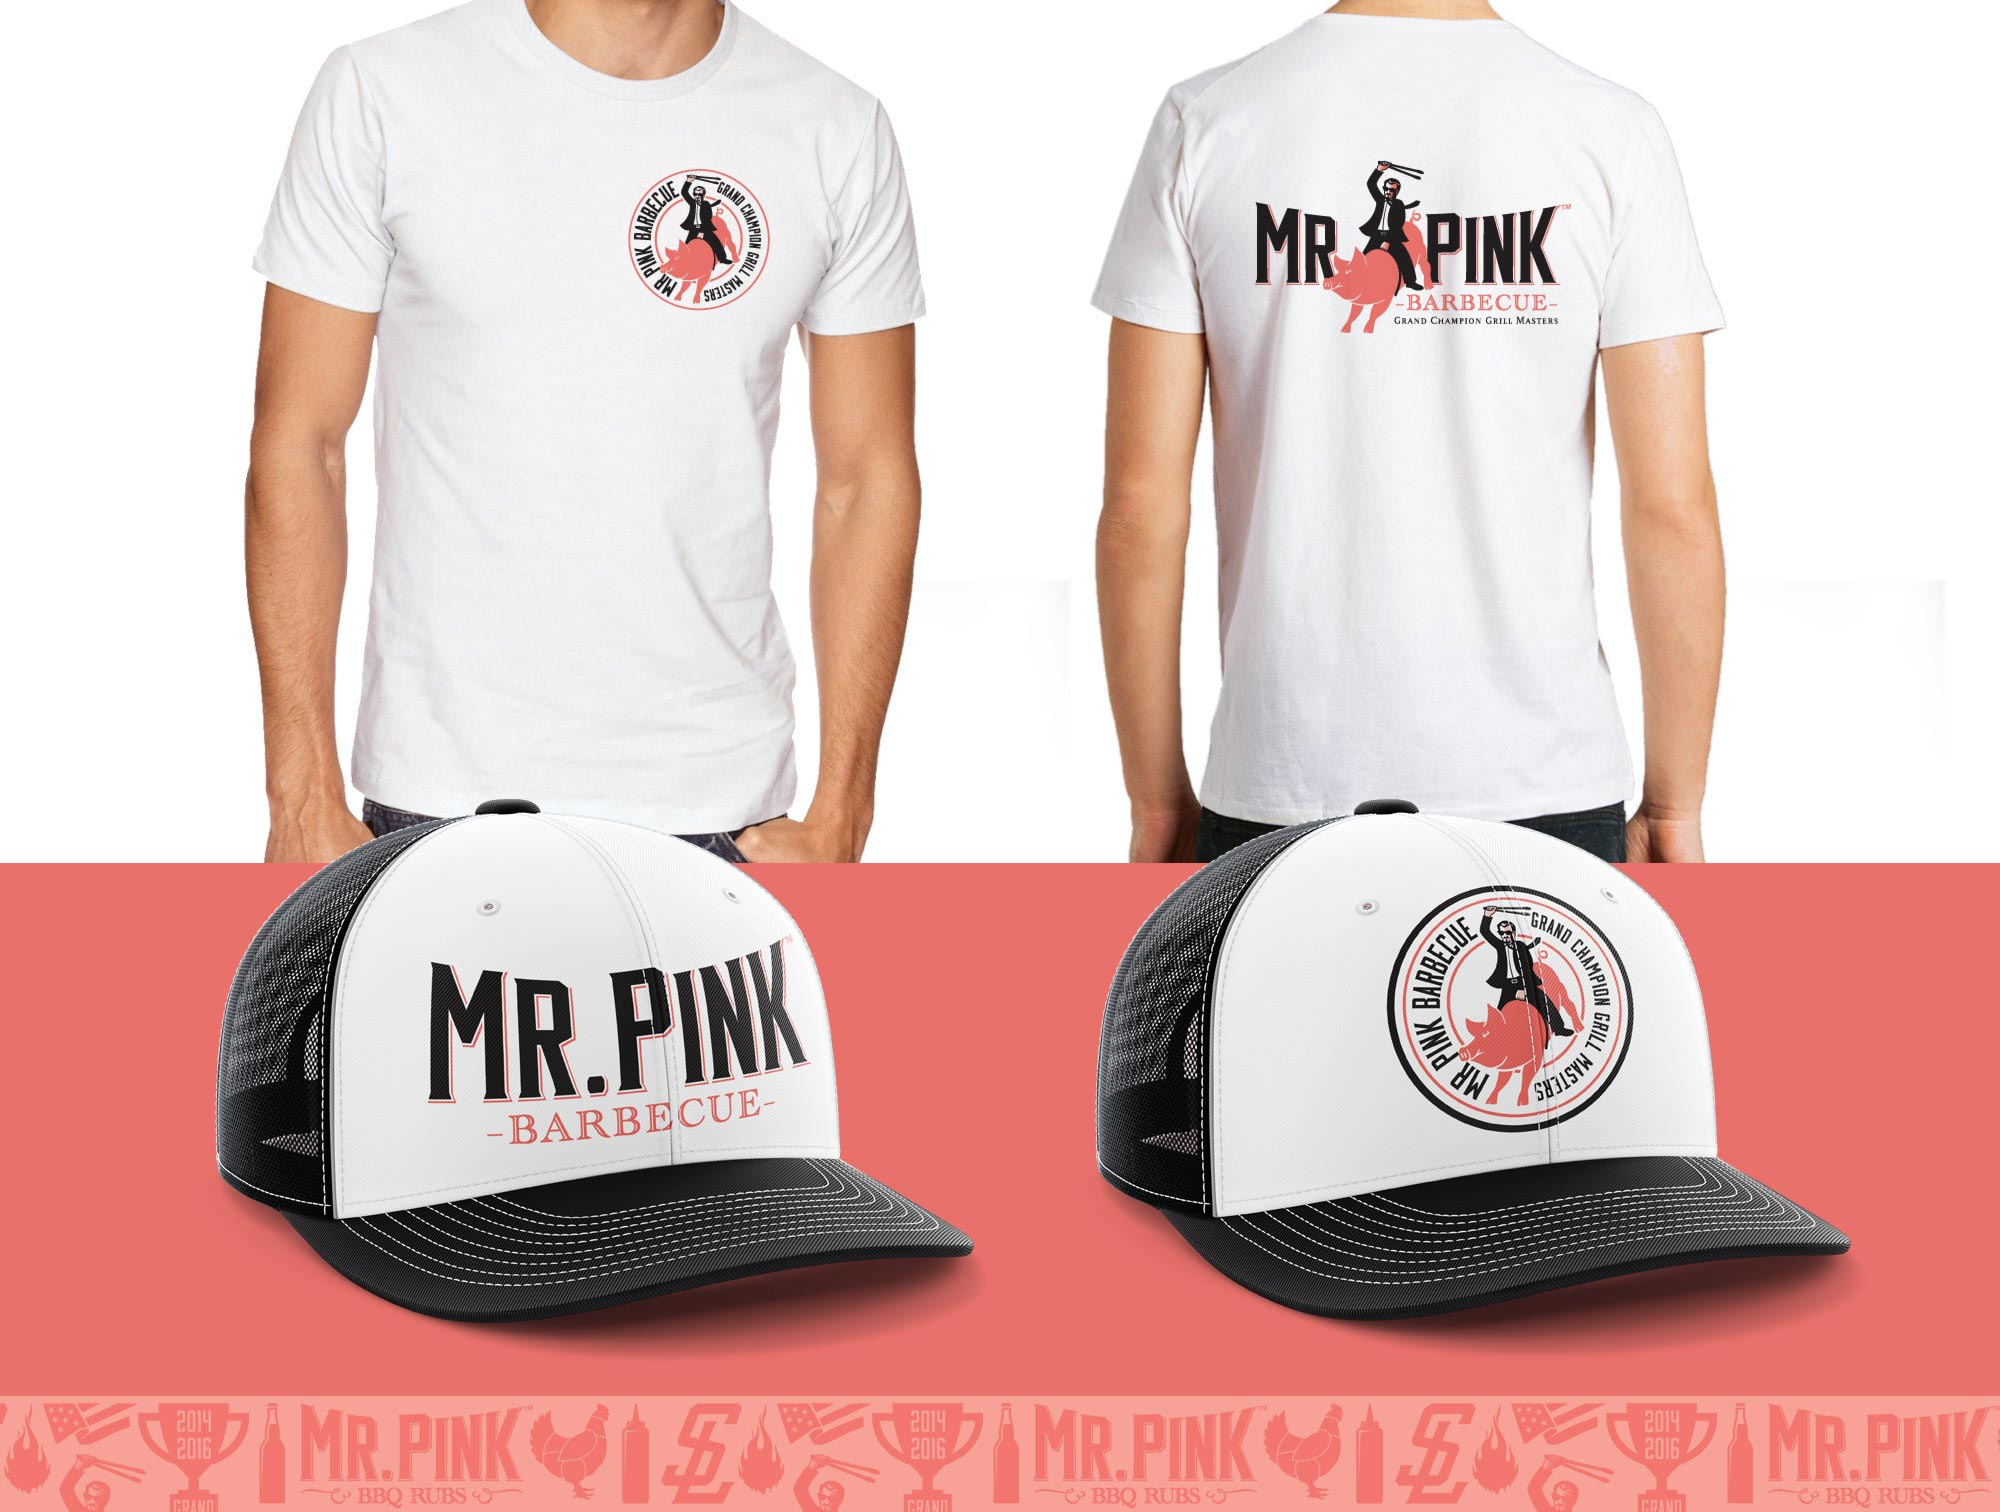 Mr. Pink BBQ t-shirt and hats designs